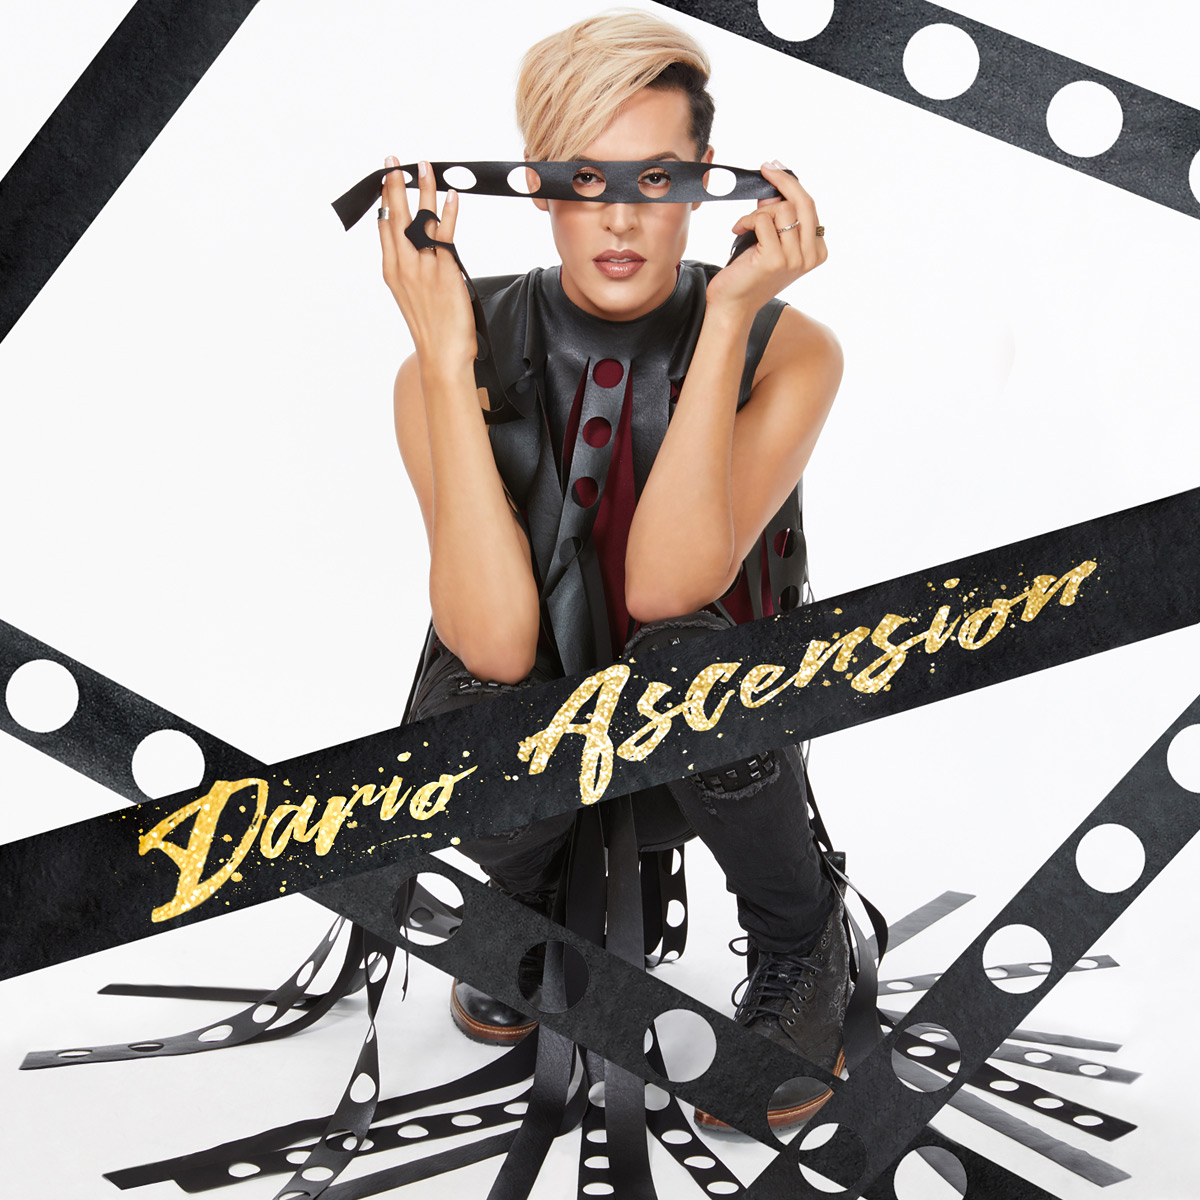 Get Dario's album: Ascension